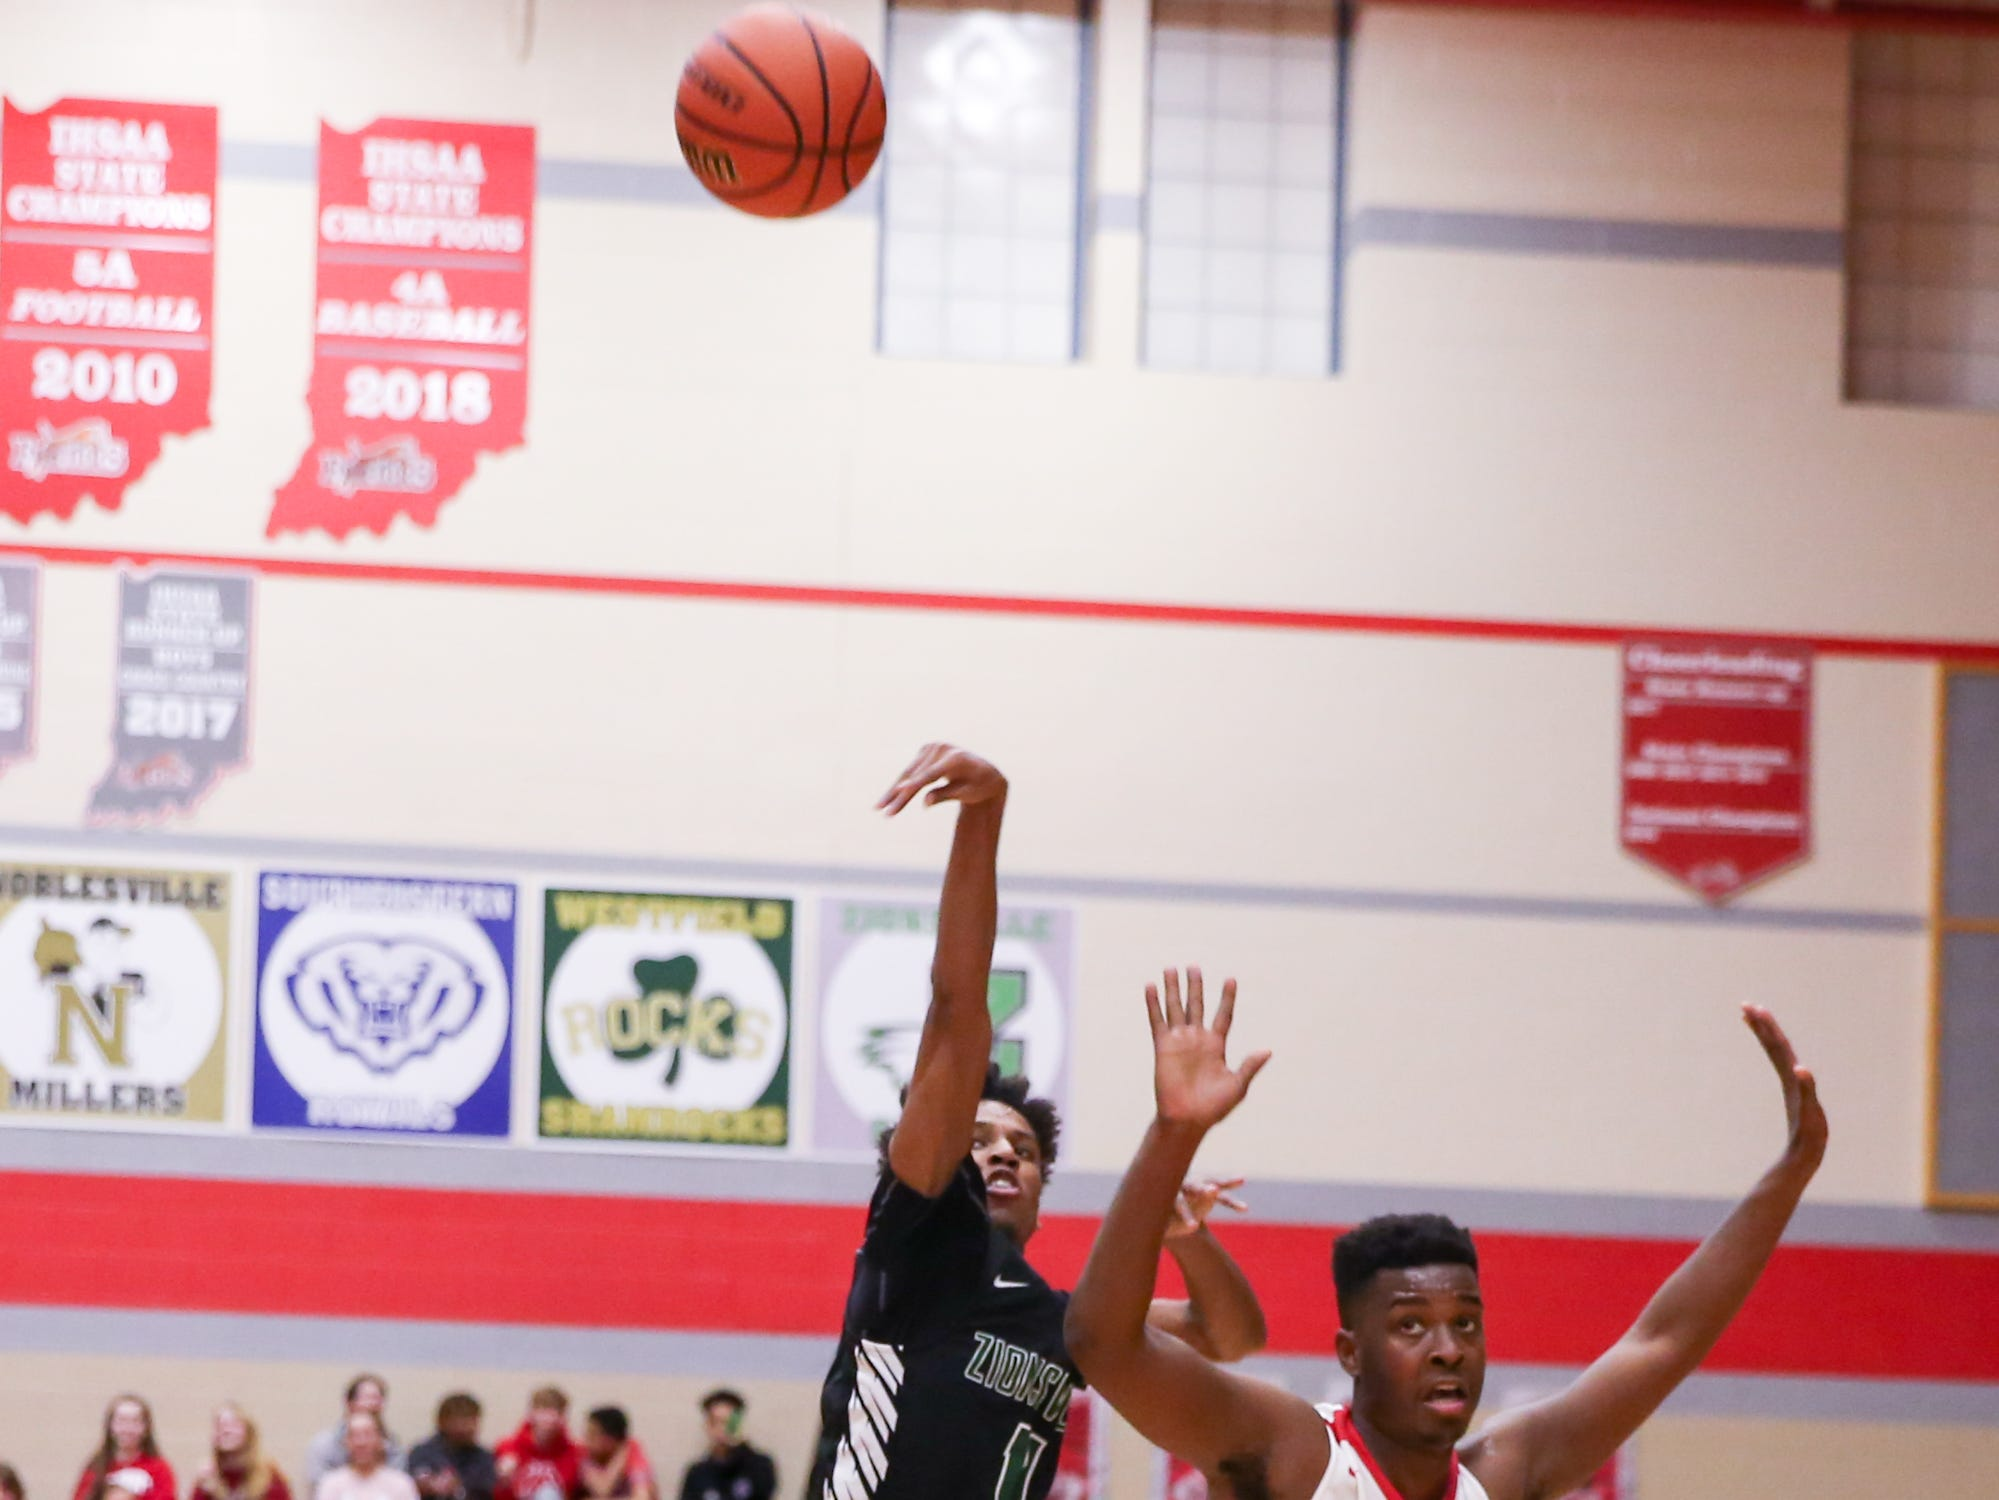 Zionsville Isaiah Thompson (11) with the 3 point shot during the second half of Zionsville vs. Fishers high school boys varsity basketball game held at Fishers High School, February 15, 2019.